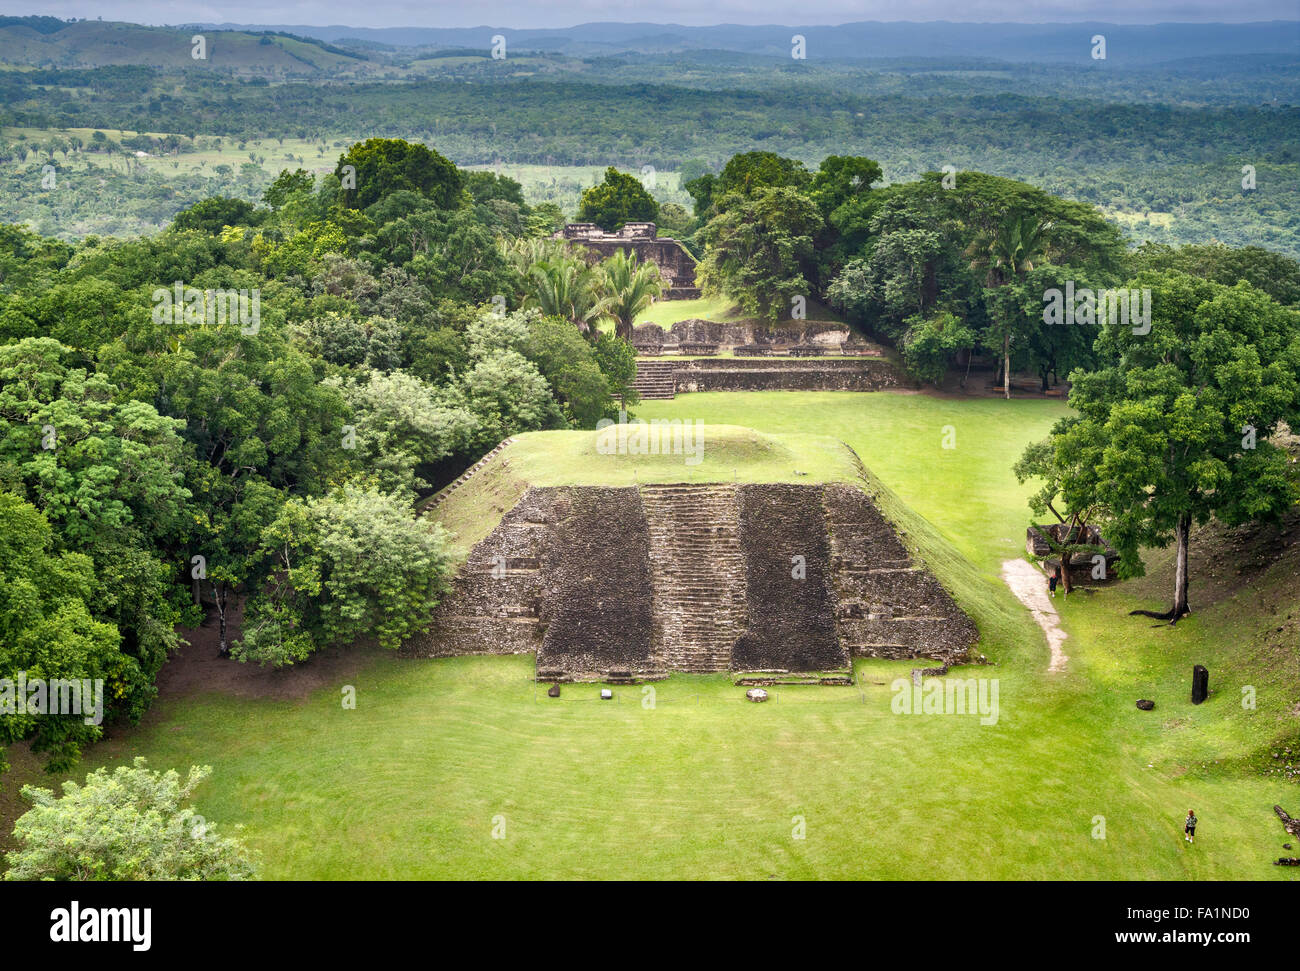 View from El Castillo at Xunantunich, Maya ruins, rainforest, near town of San Jose Succotz, Cayo District, Belize - Stock Image